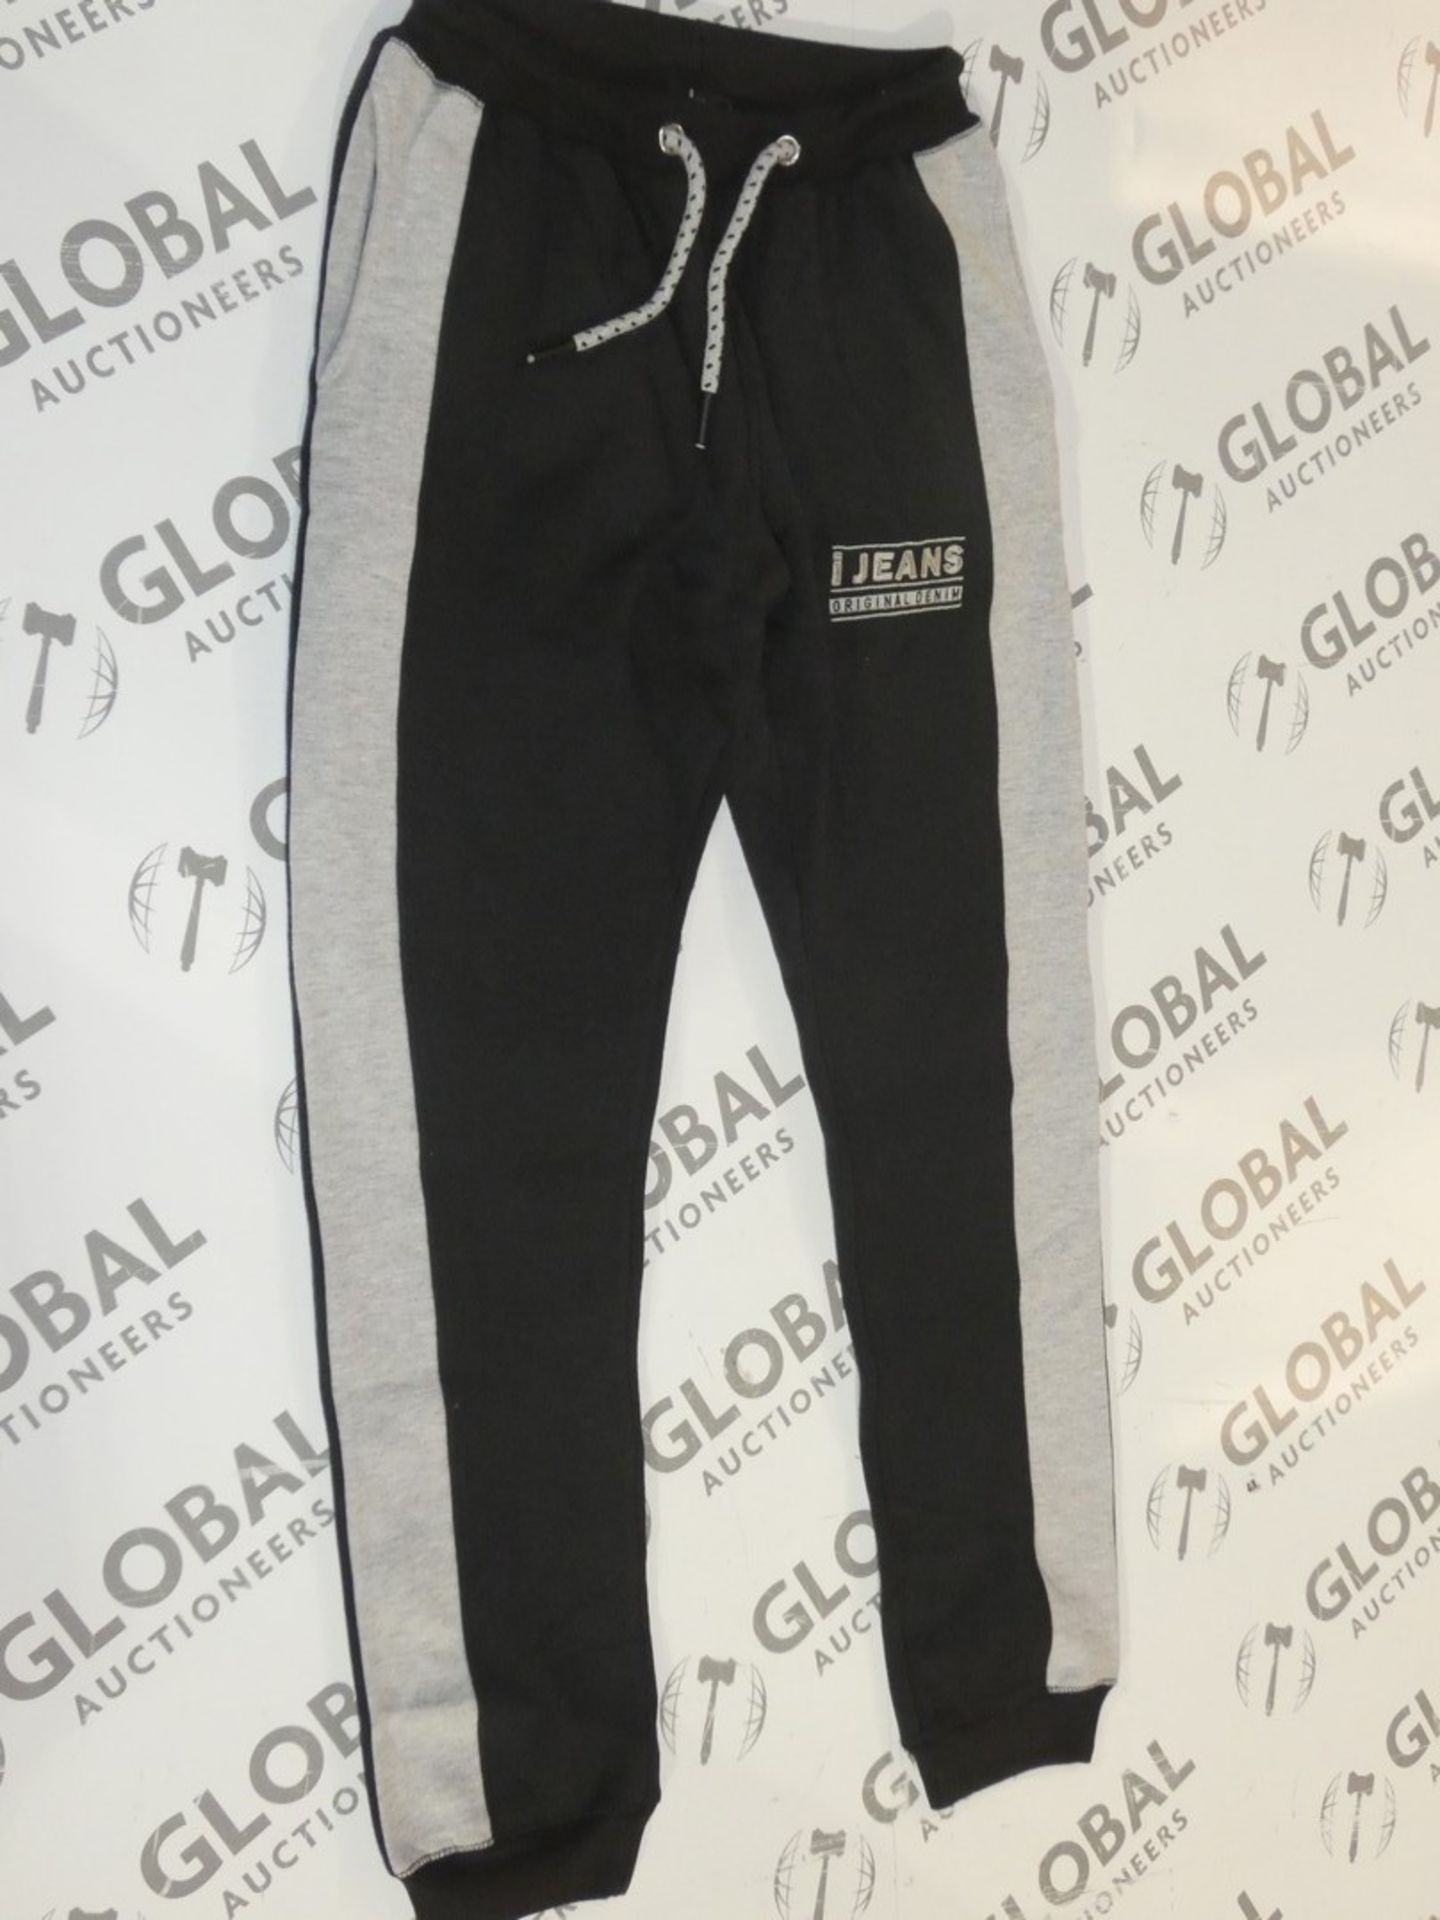 Lot 166 - Assorted Brand New Pairs Of Ijeans Original Denim Black Lounging Pants In Assorted Sizes RRP £25 A